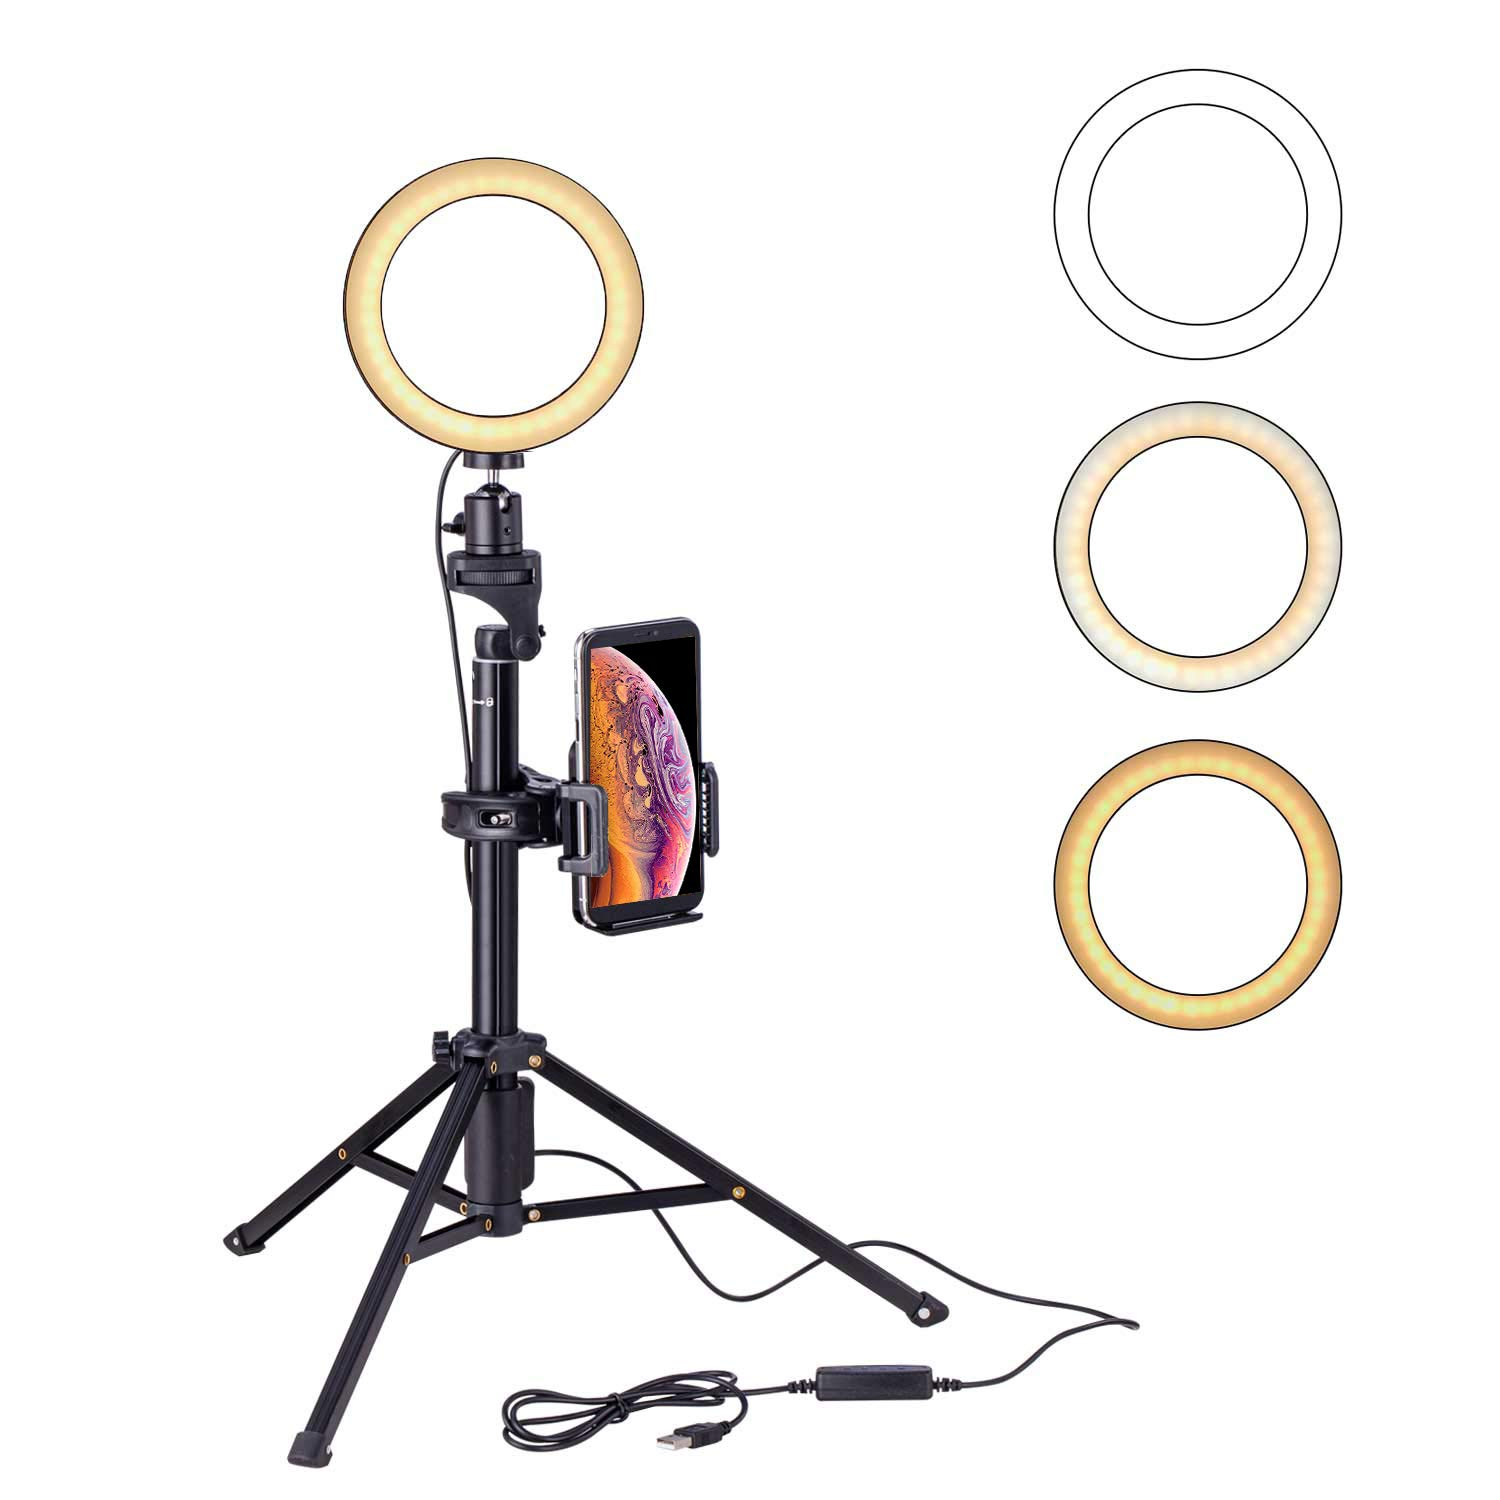 Eocean 6.3inch Selfie Ring Light with Tripod(54inch Tripod) for YouTube/Live Stream/Makeup, Mini Led Camera Ringlight for Vlog/Video/Photography Compatible with iPhone Xs/Max/XR 8/7 Plus/X/Android by Eocean